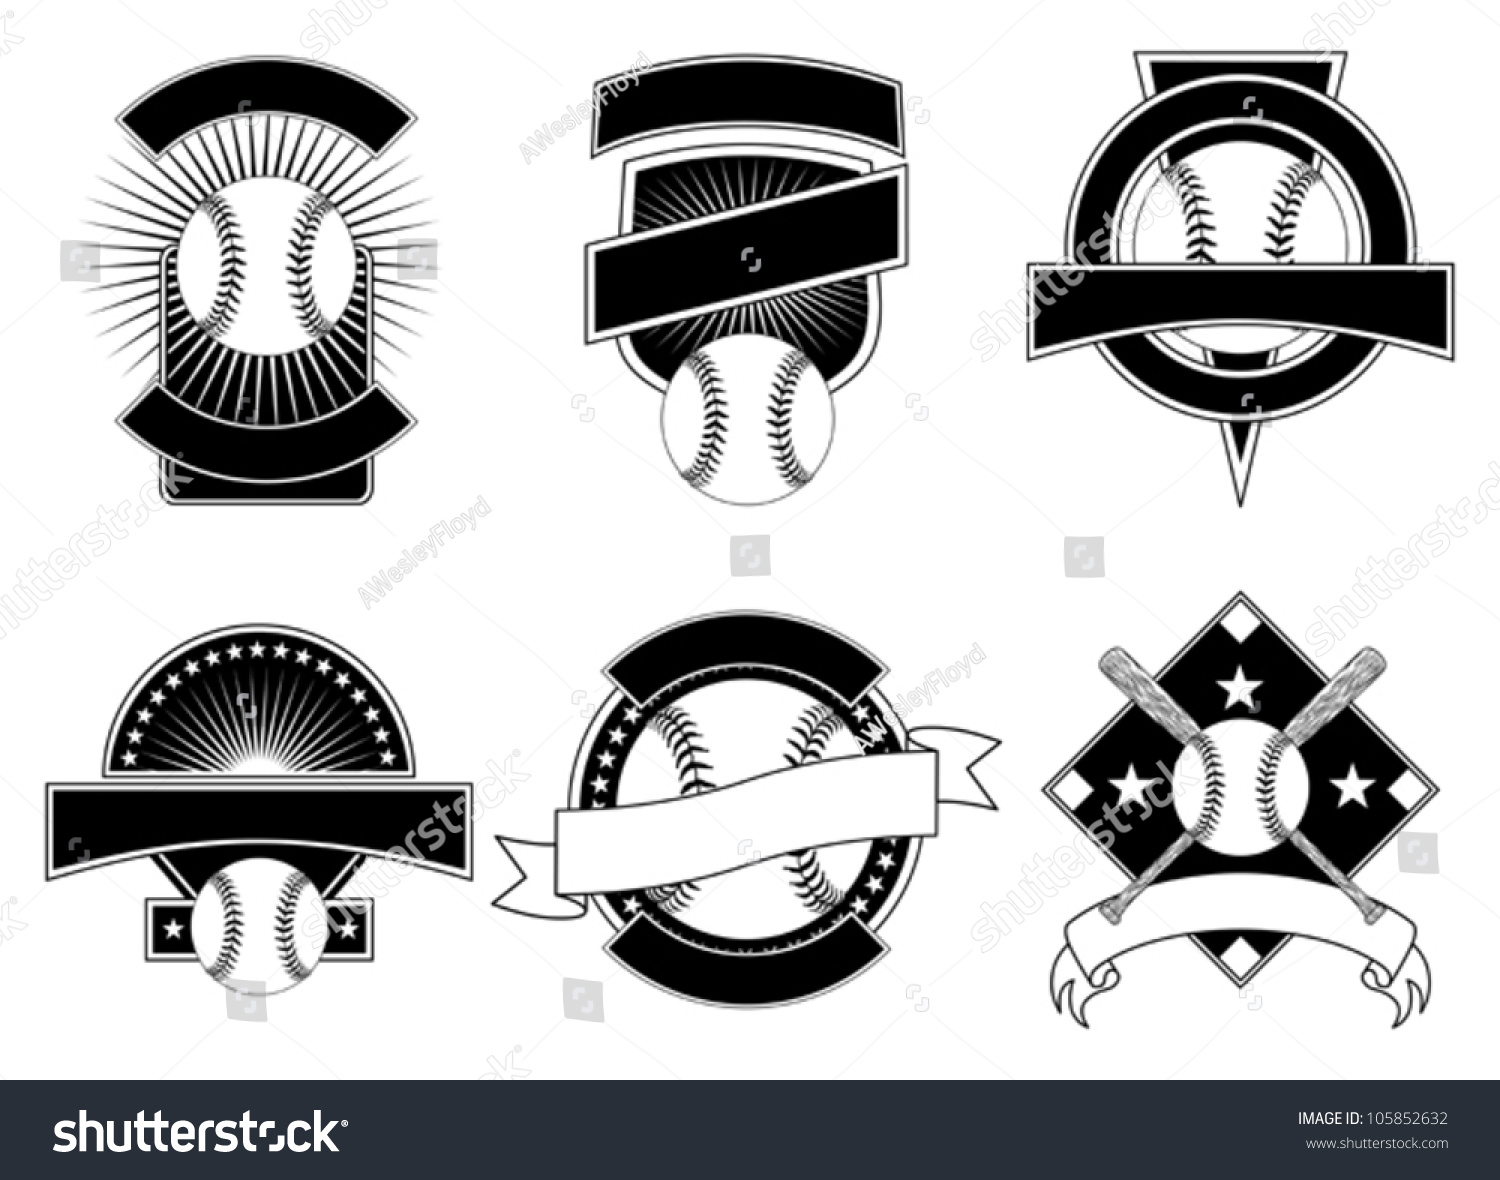 baseball design templates is an illustration of six baseball design templates for use with your own - Softball Jersey Design Ideas